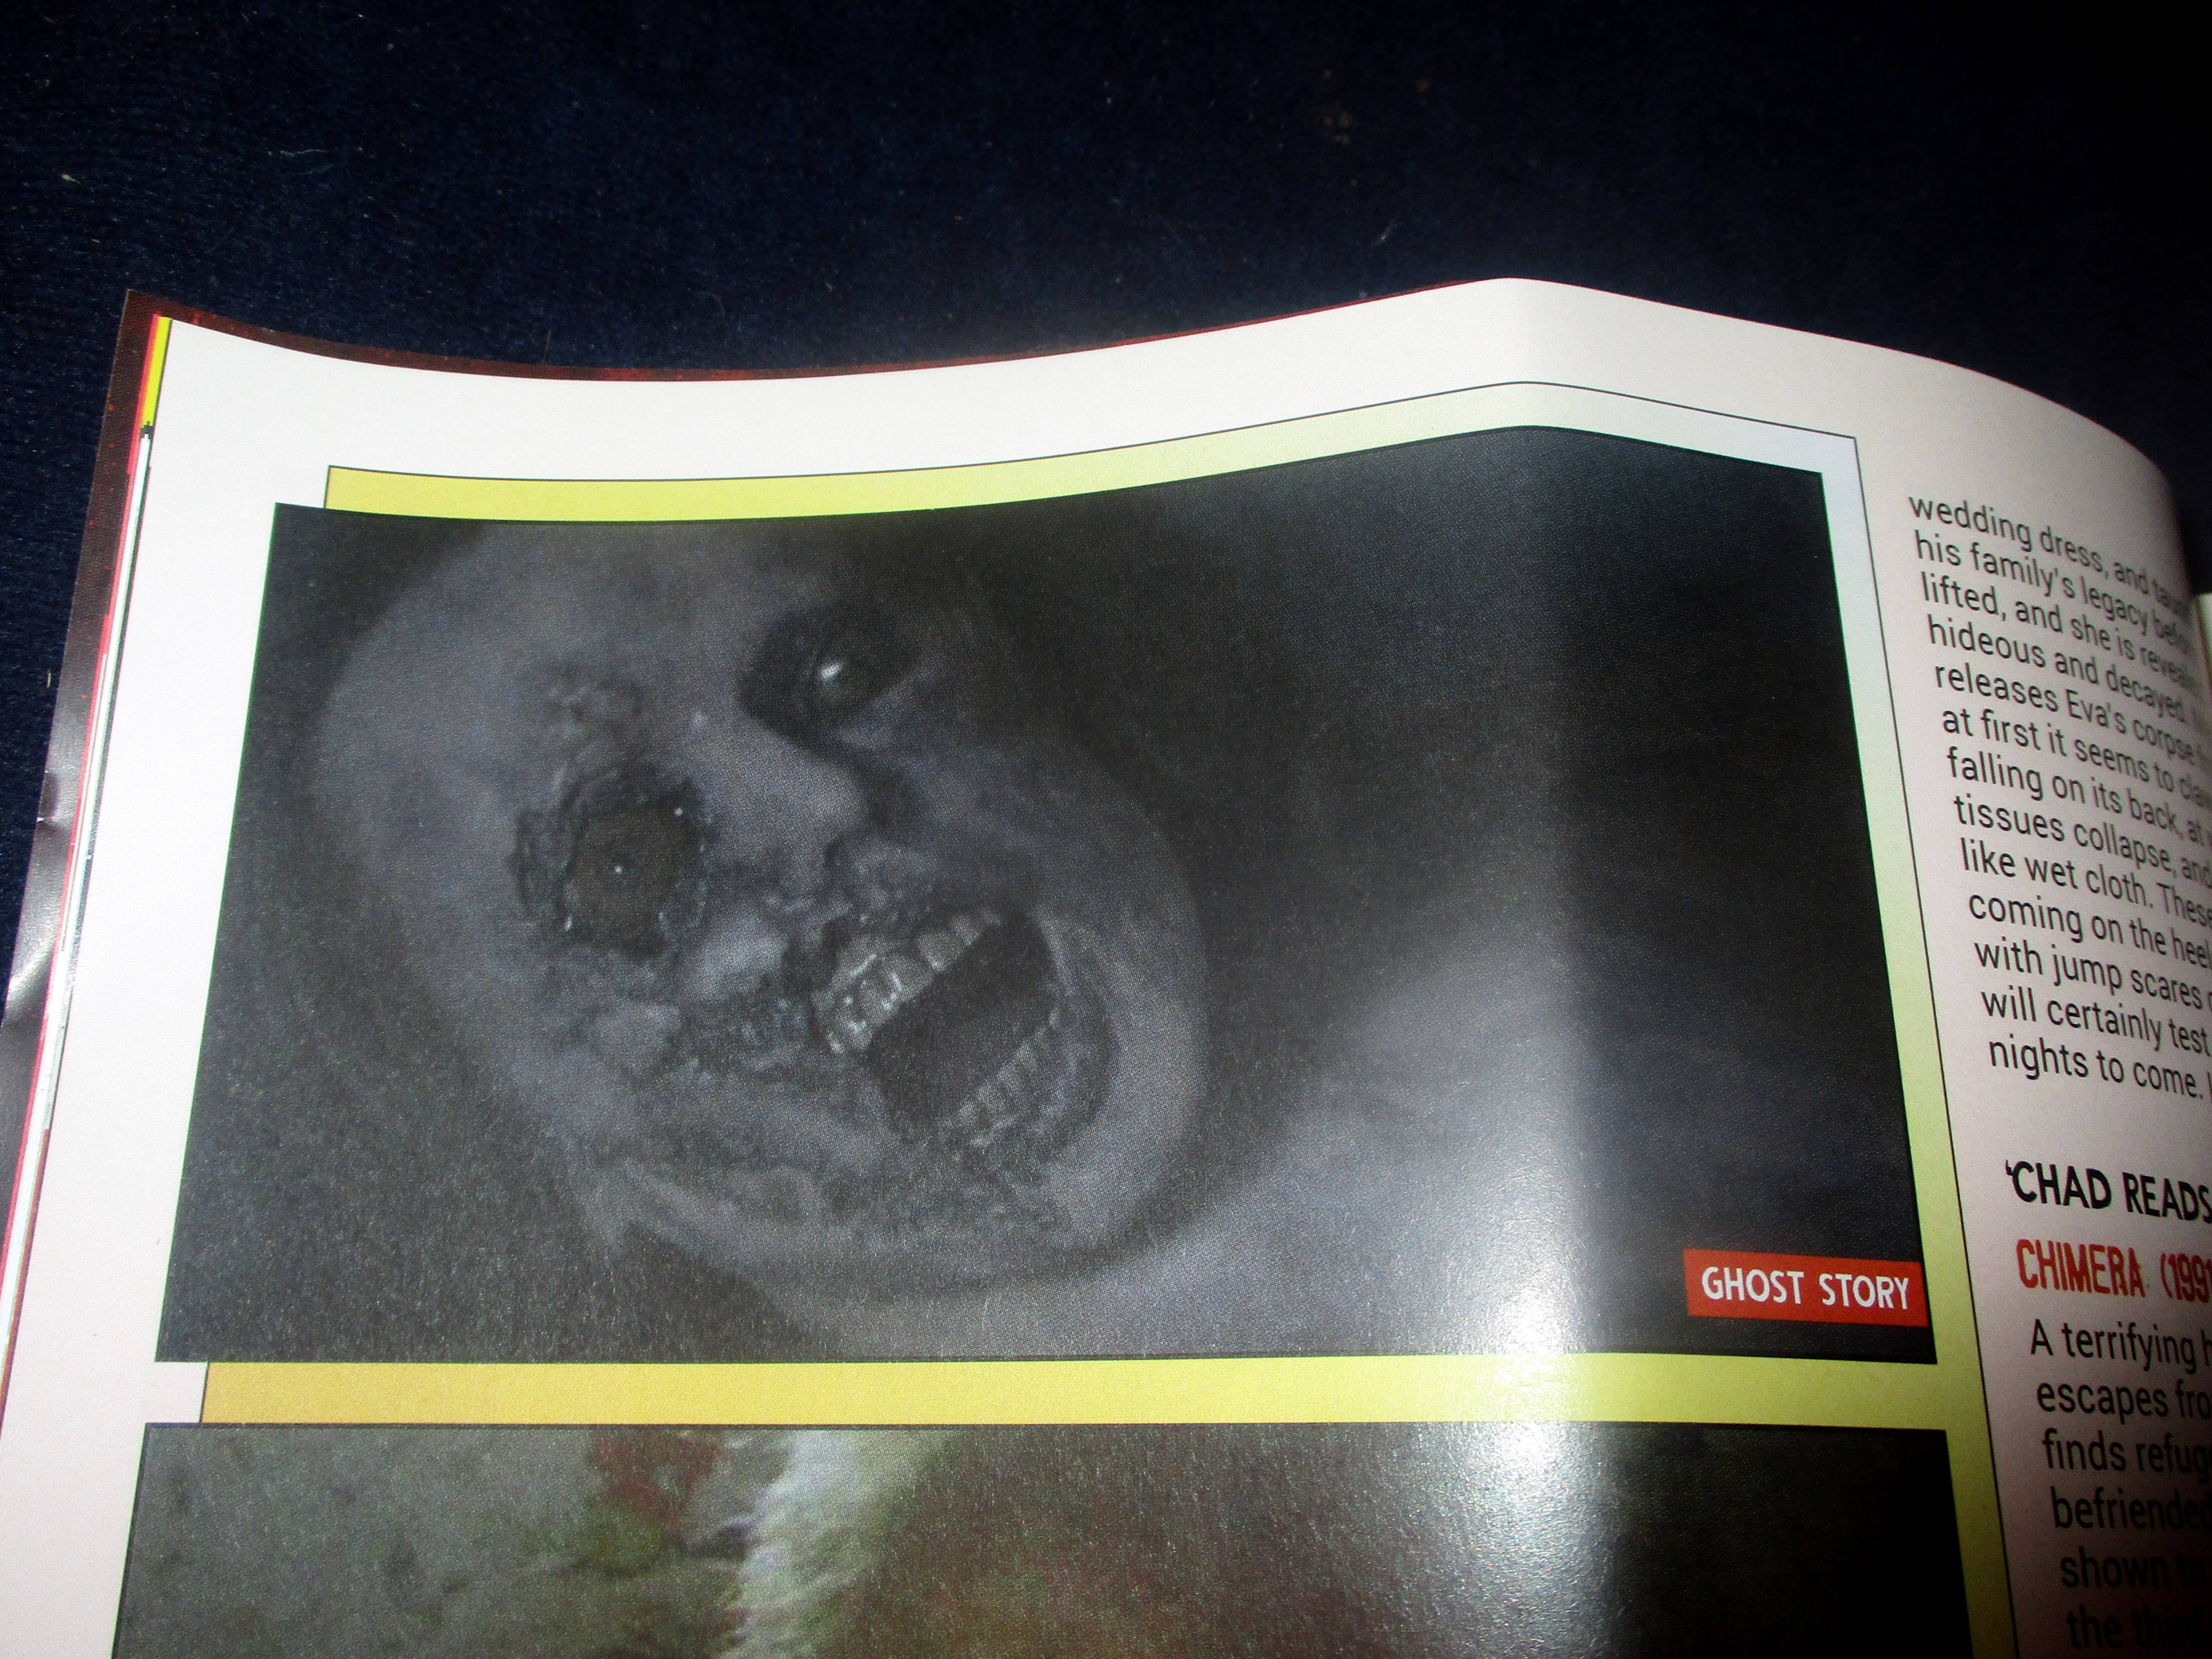 Photo Accompanying Eva's Corpse in Everyone's Entitled to One Good Scare in Starburst Magazine #474: Everyone's Entitled to One Good Scare Collectors' Edition at The Wombatorium 2.0: A Capital Idea